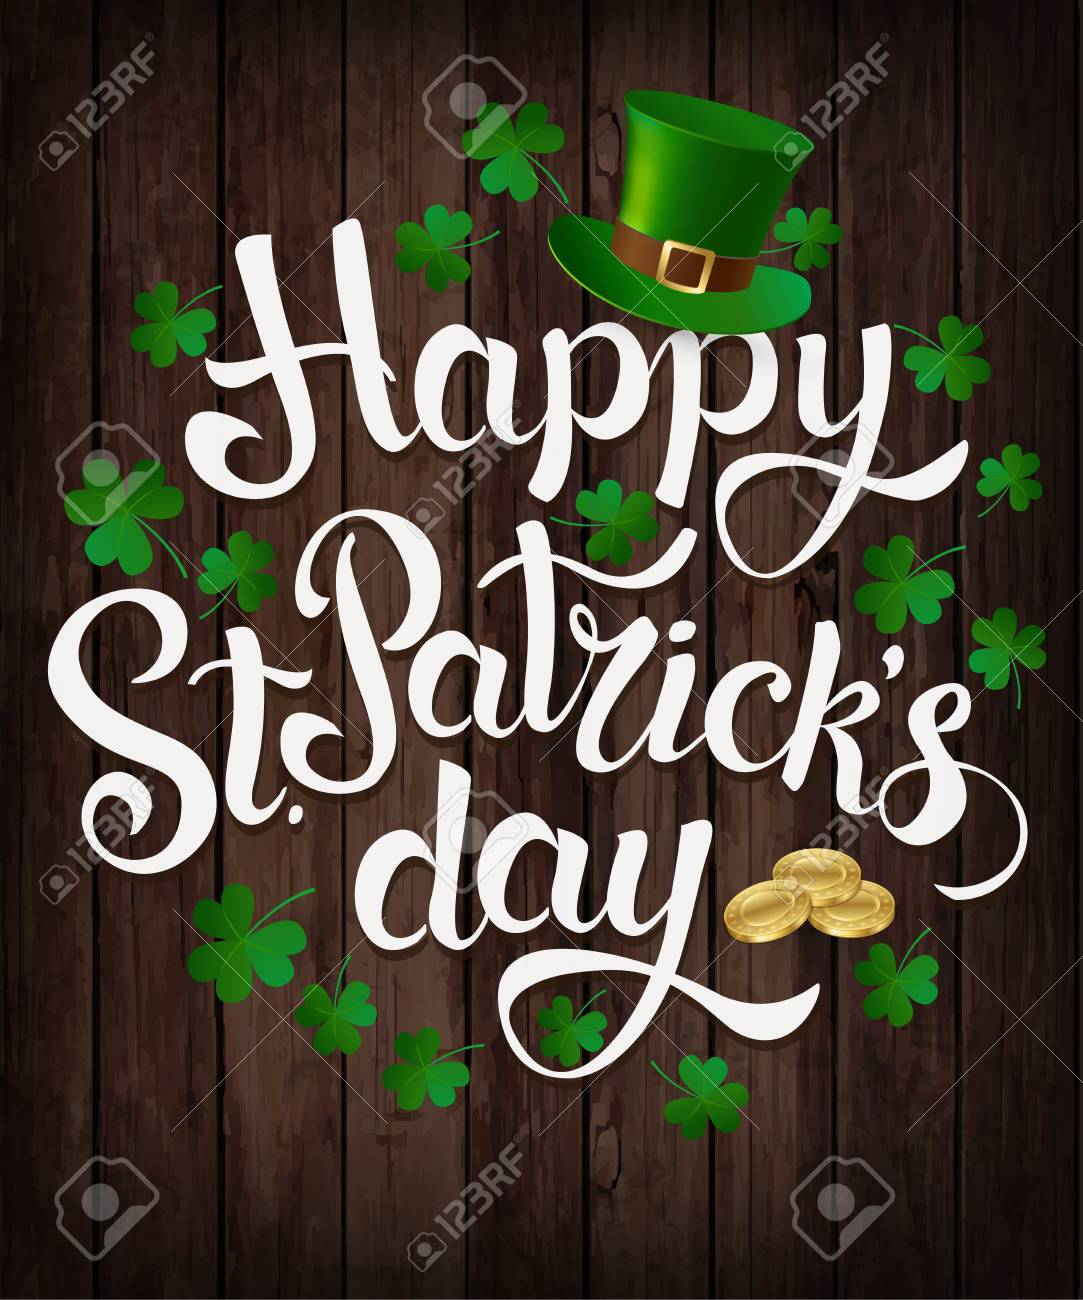 Happy St. Patrick s Day lettering Vector illustration. - 90821729